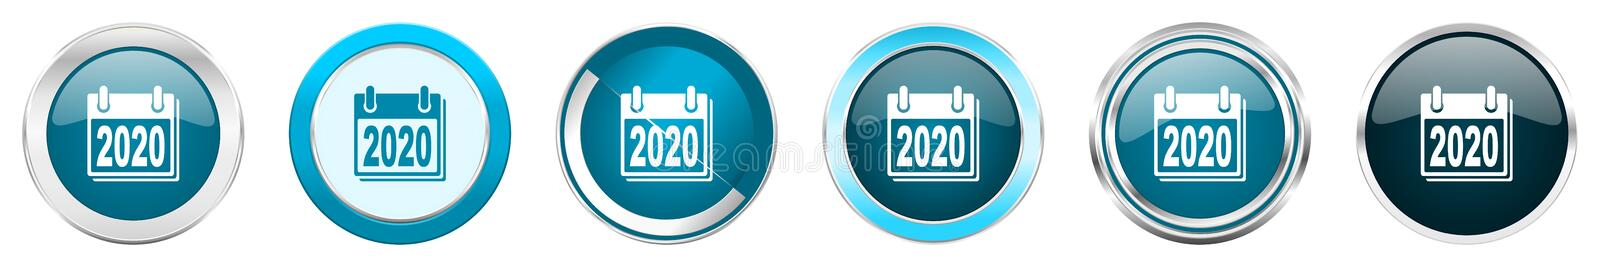 New year 2020 silver metallic chrome border icons in 6 options, set of web blue round buttons isolated on white background.  stock illustration